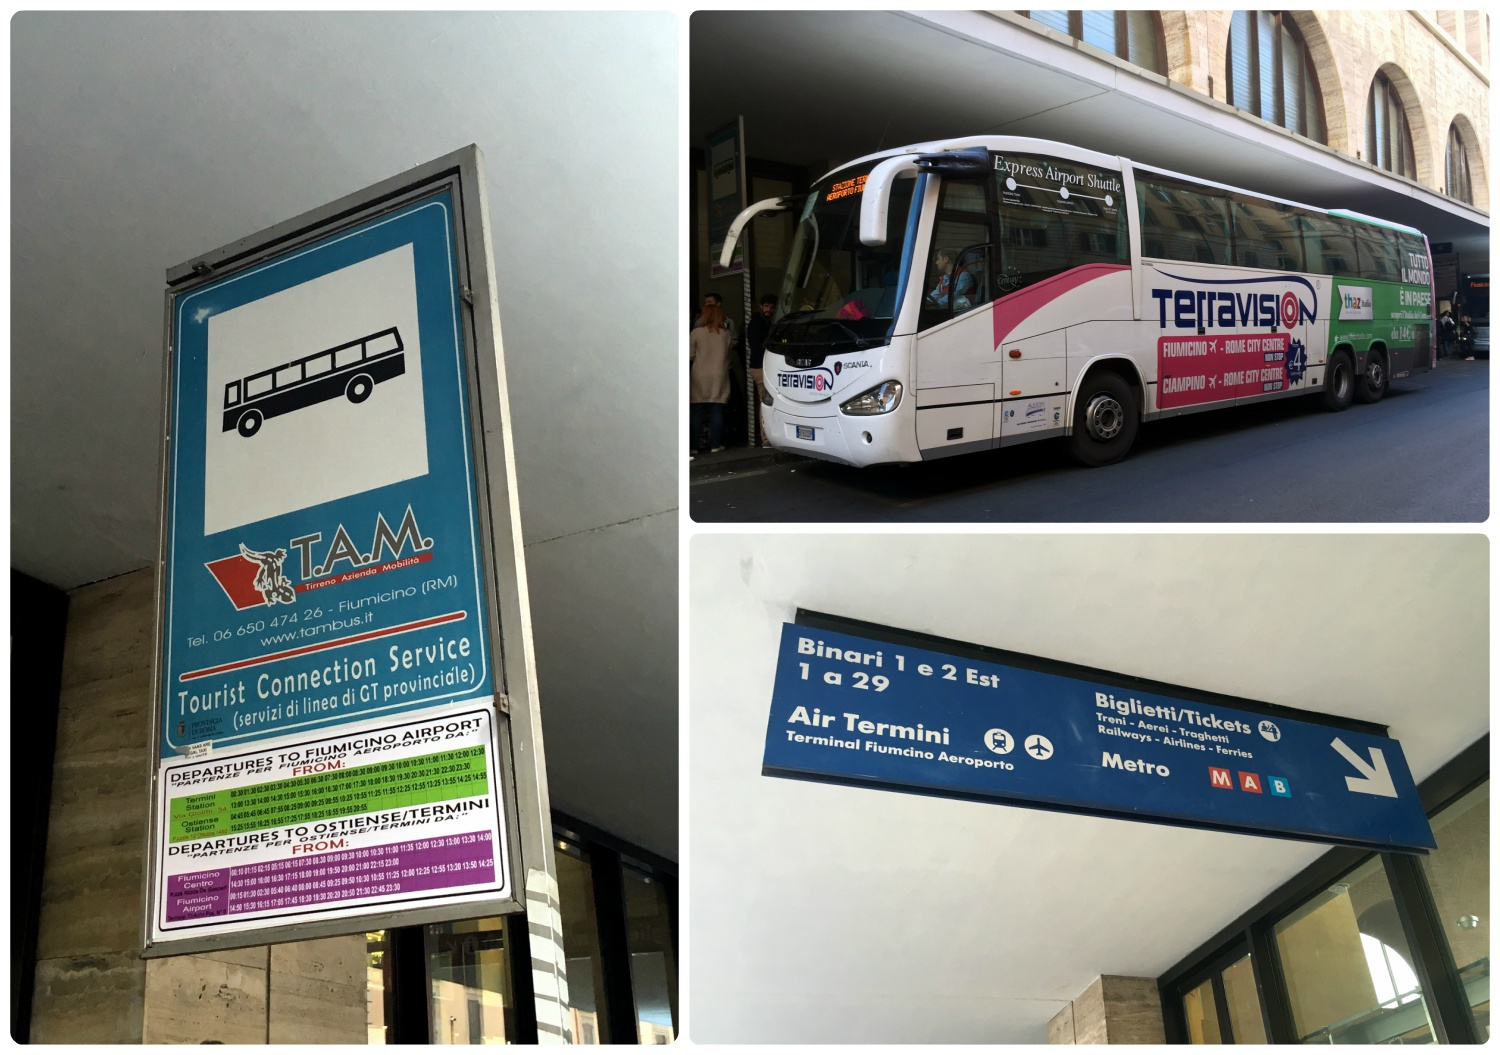 At Termini Station in Rome, Italy the bus to and from the airport drops off on either Via Marsala or Via Giovanni Giolitti. Look for signs to find the correct pick-up location.